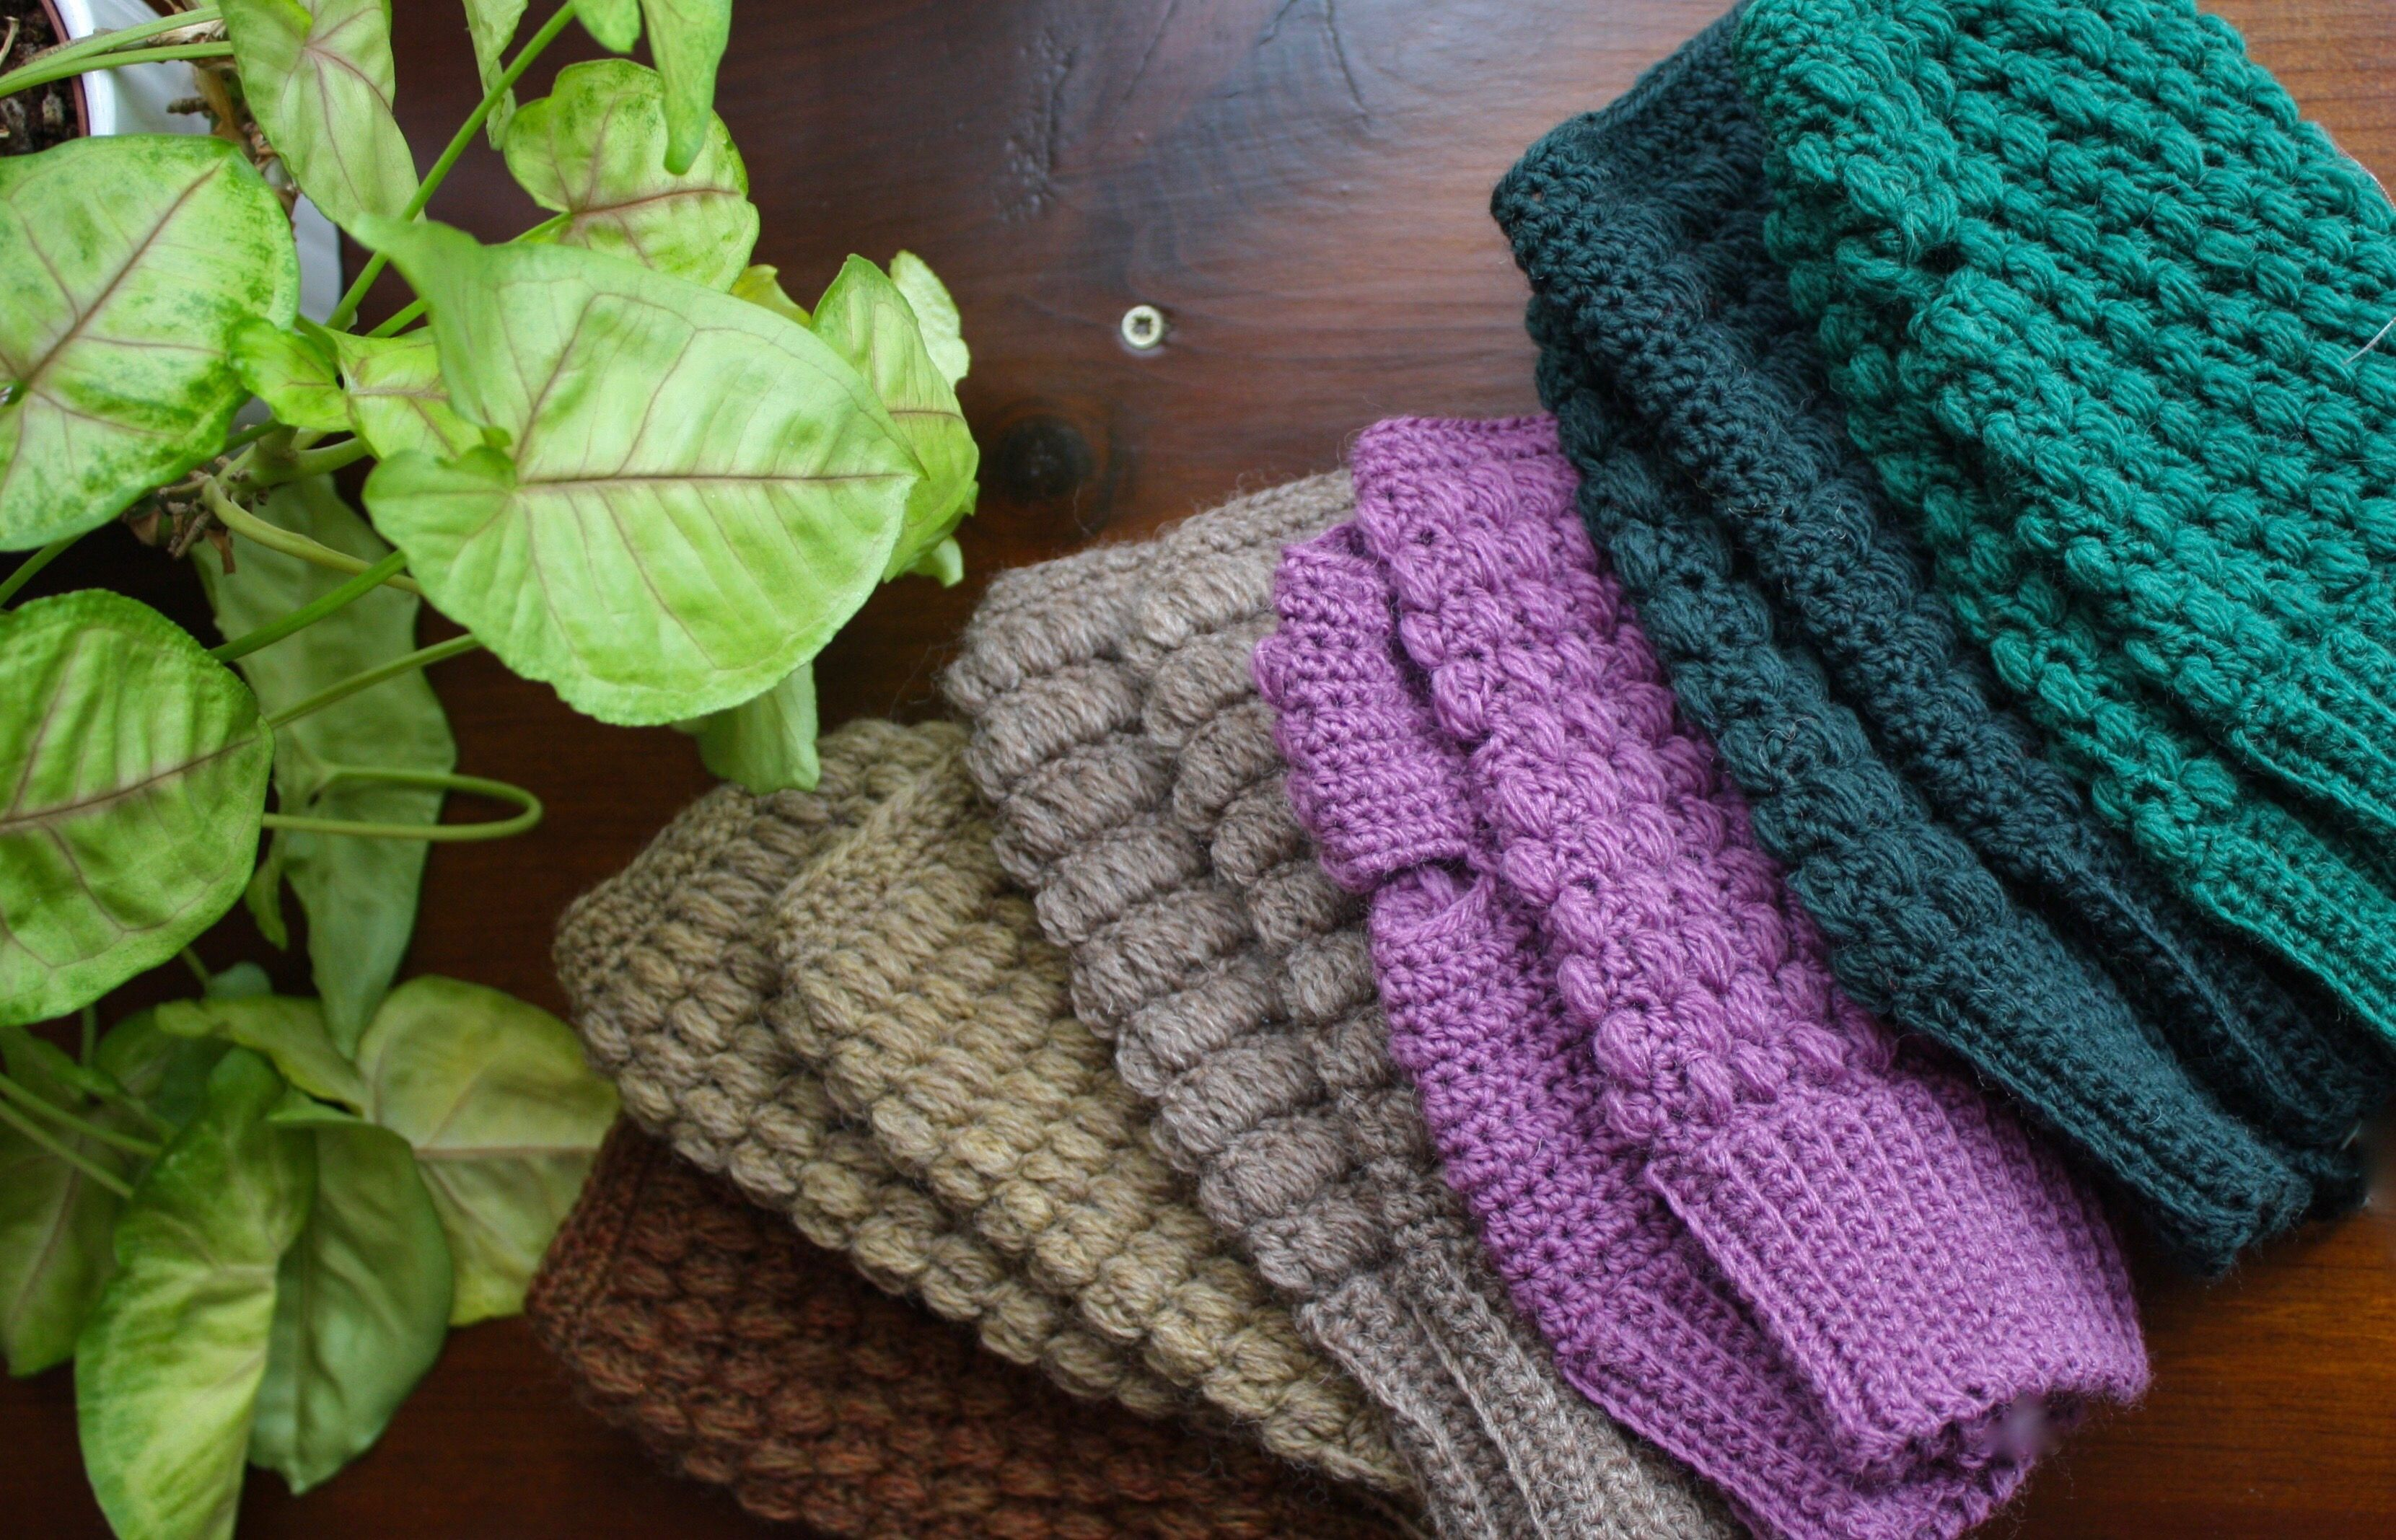 Close-Up Of Woolen Gloves By Plant On Table